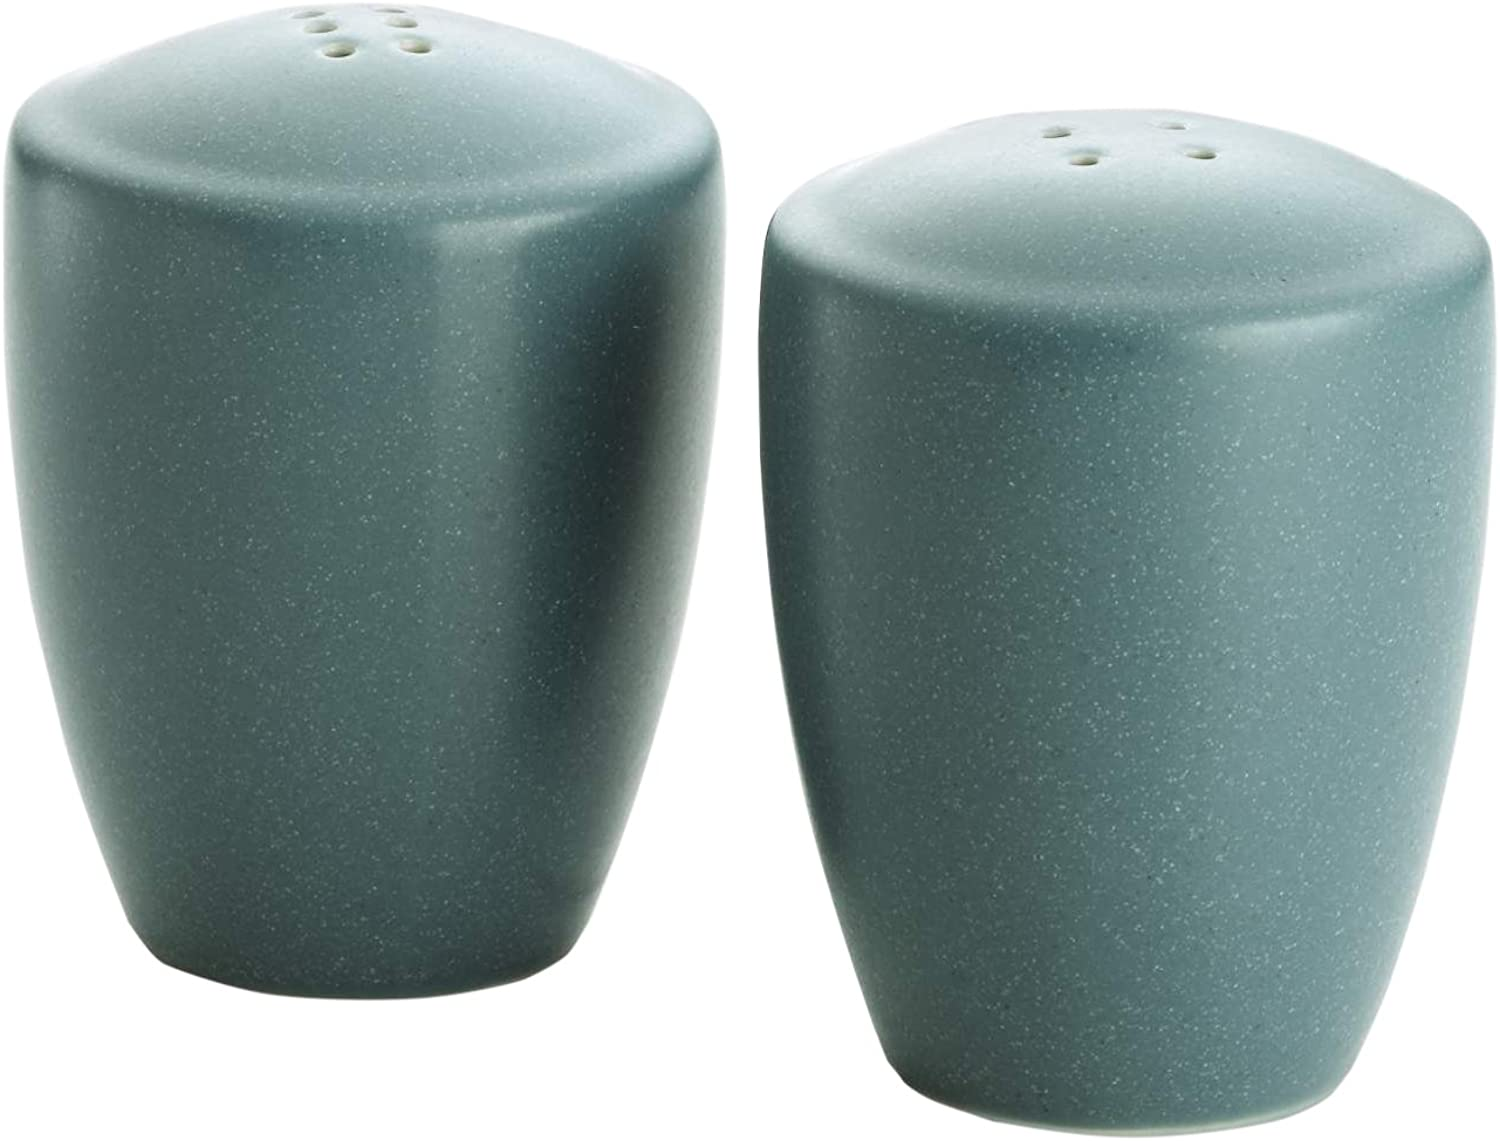 Noritake colorwave Salt and Pepper, Turquoise